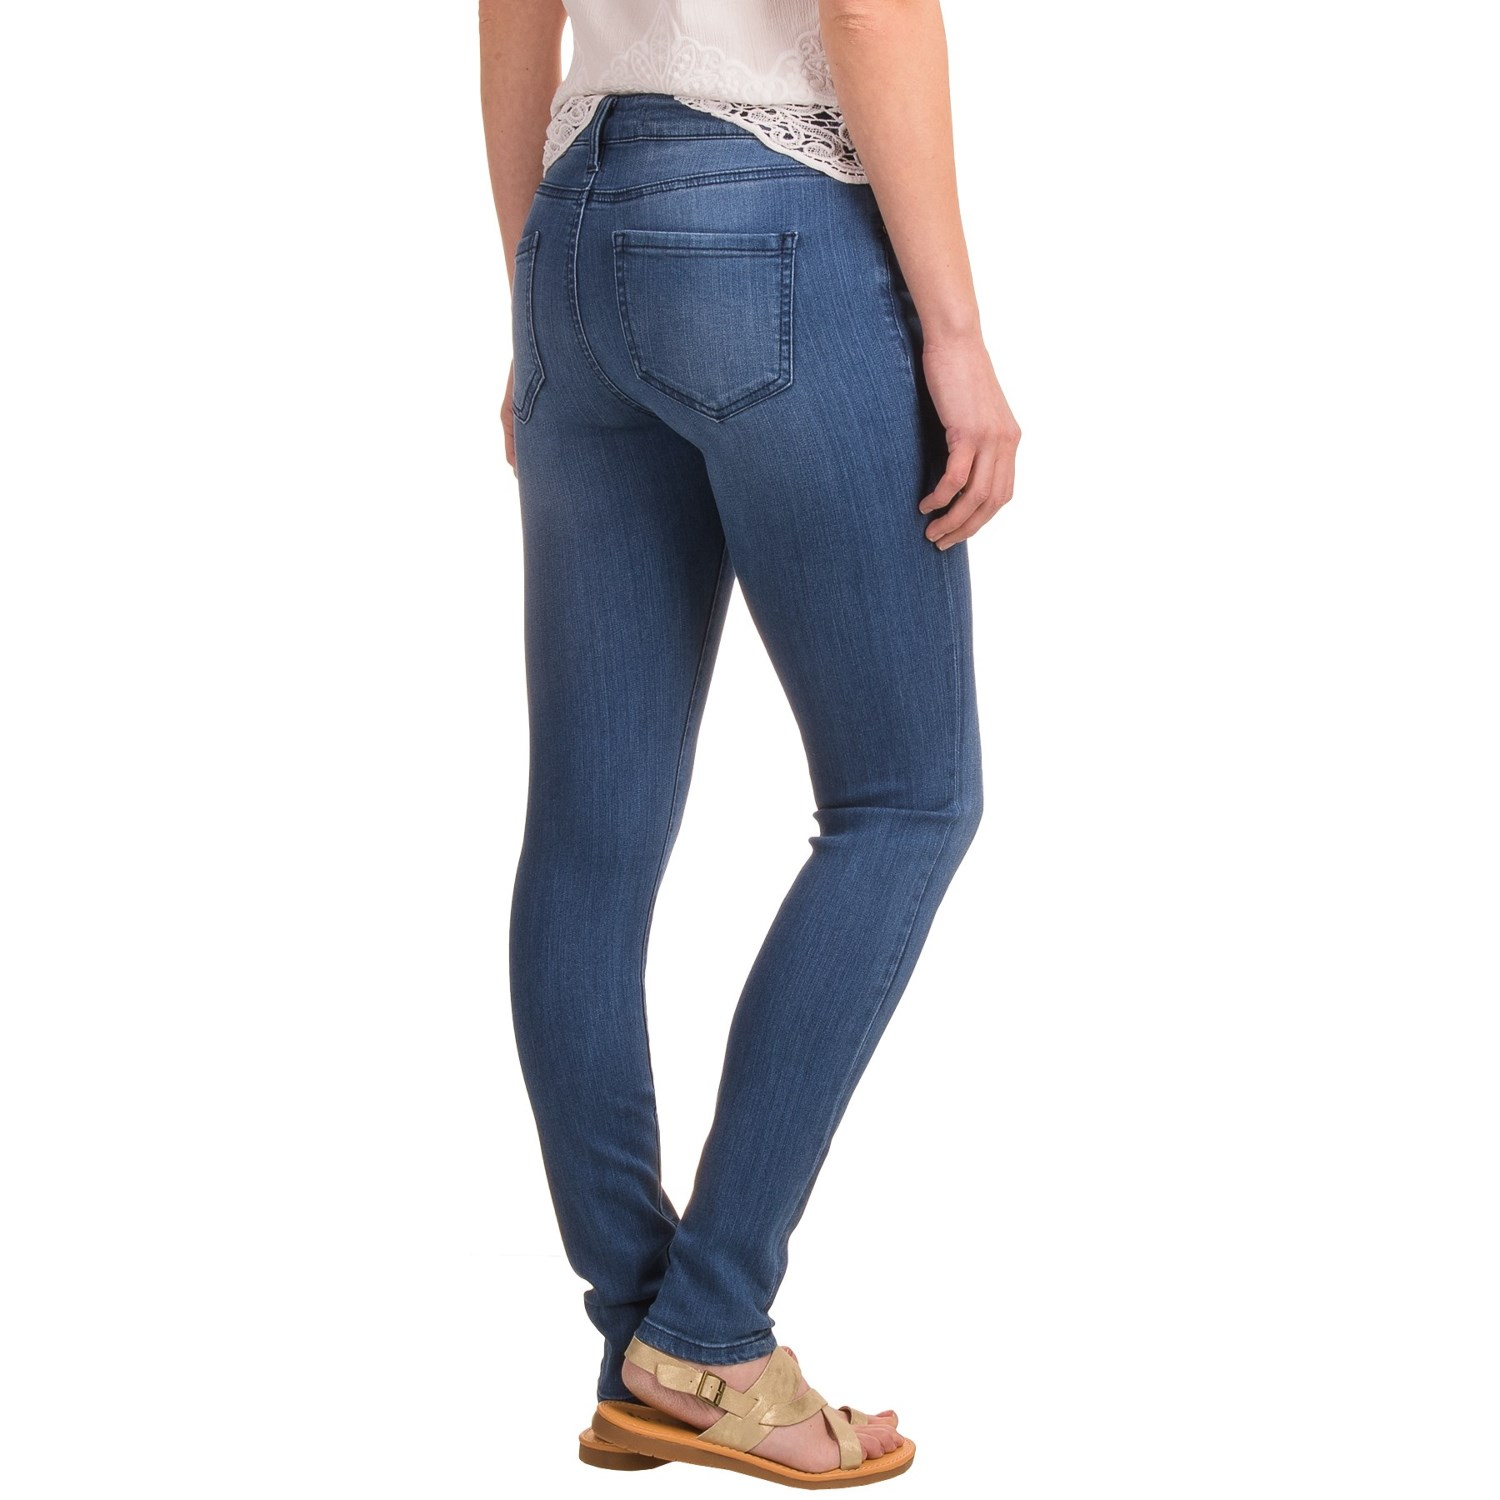 Free shipping and returns on skinny jeans for women at ingmecanica.ml Shop for skinny jeans by wash, rise, waist size, and more from brands like Articles of Society, Topshop, AG, Madewell, and more. Free shipping and returns.